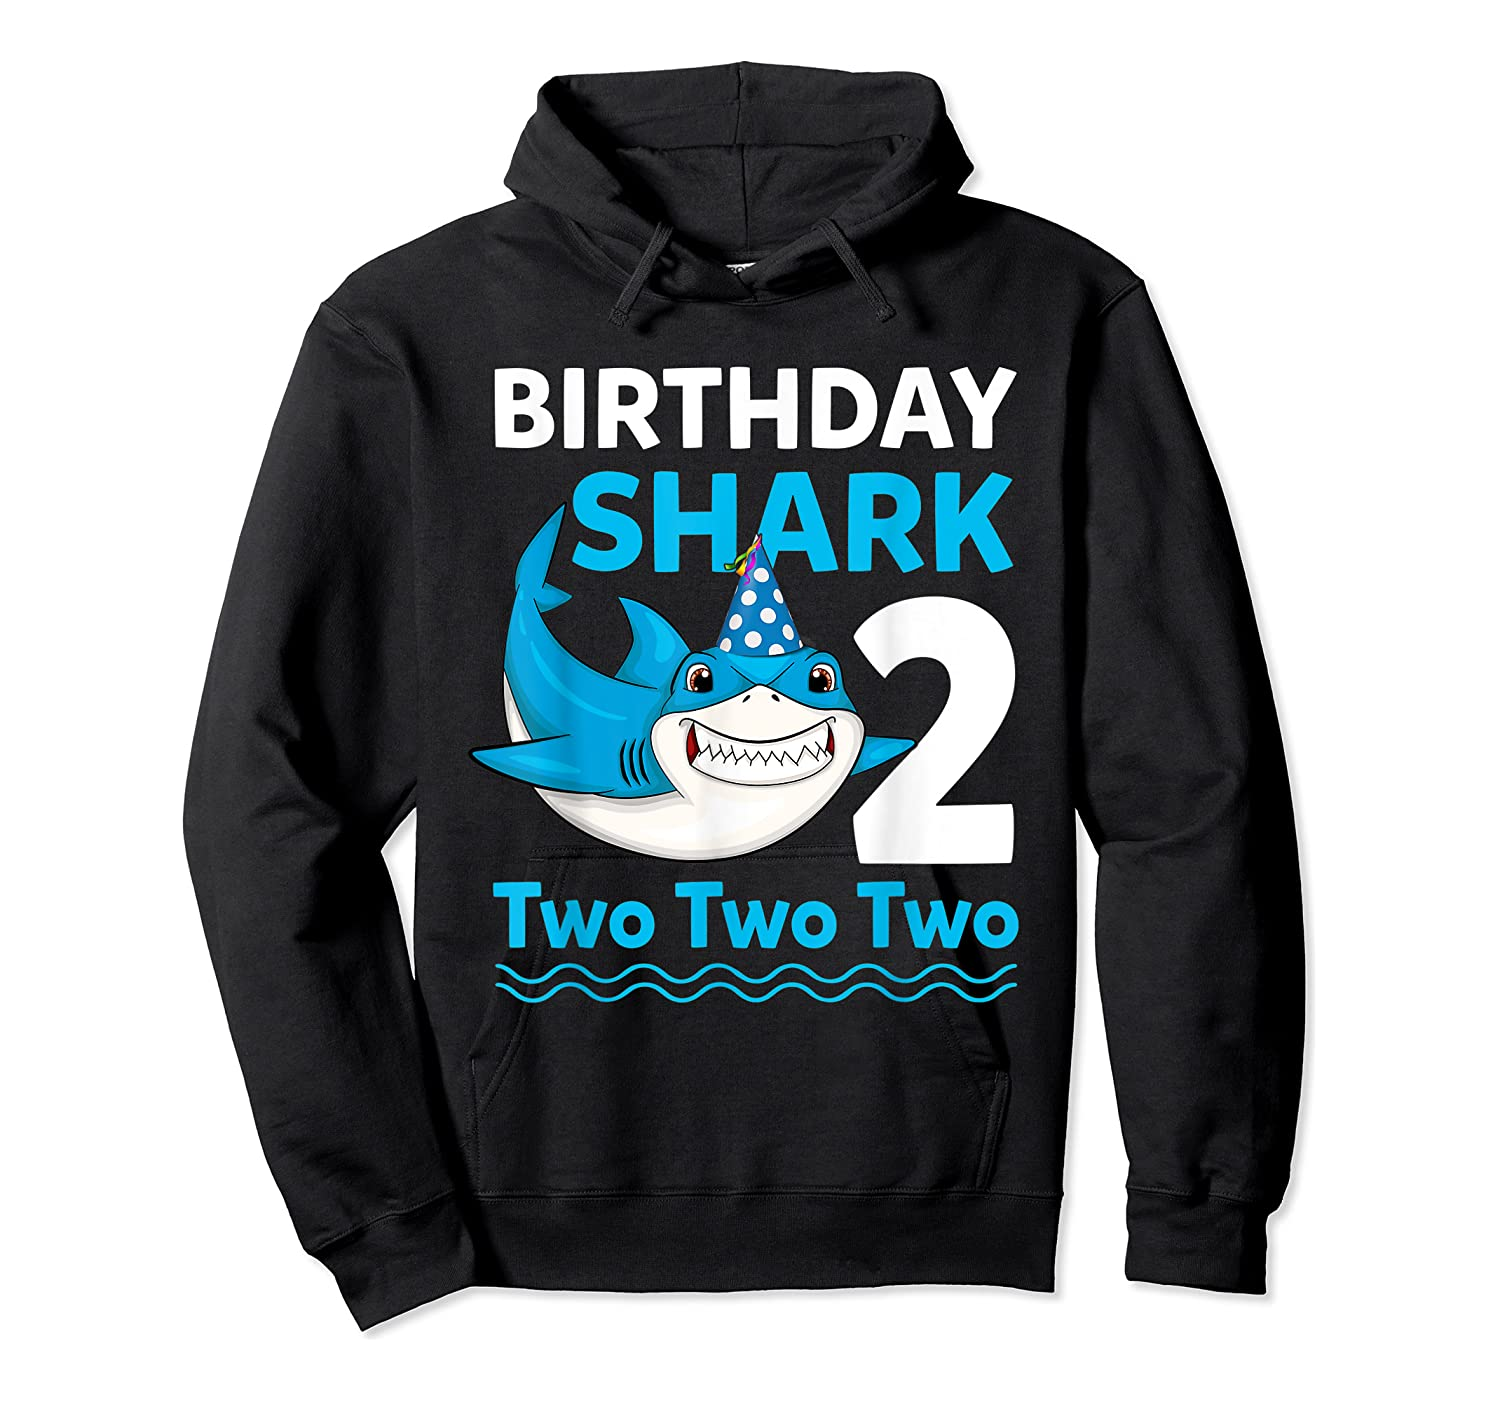 Birthday Shark 2017 2 Years Old Gift For Boy Girl Shirts Unisex Pullover Hoodie